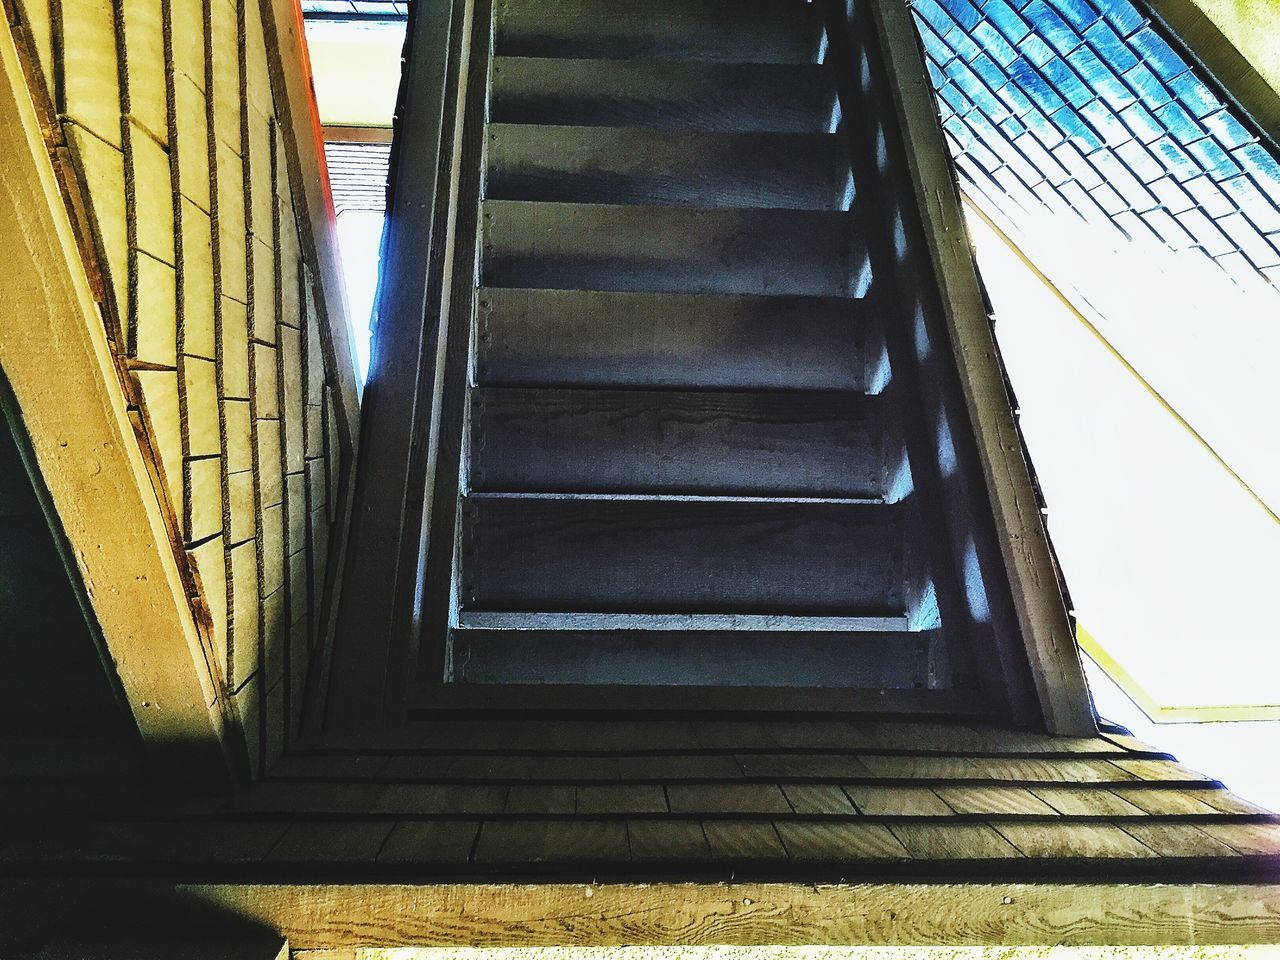 Look up under the stair